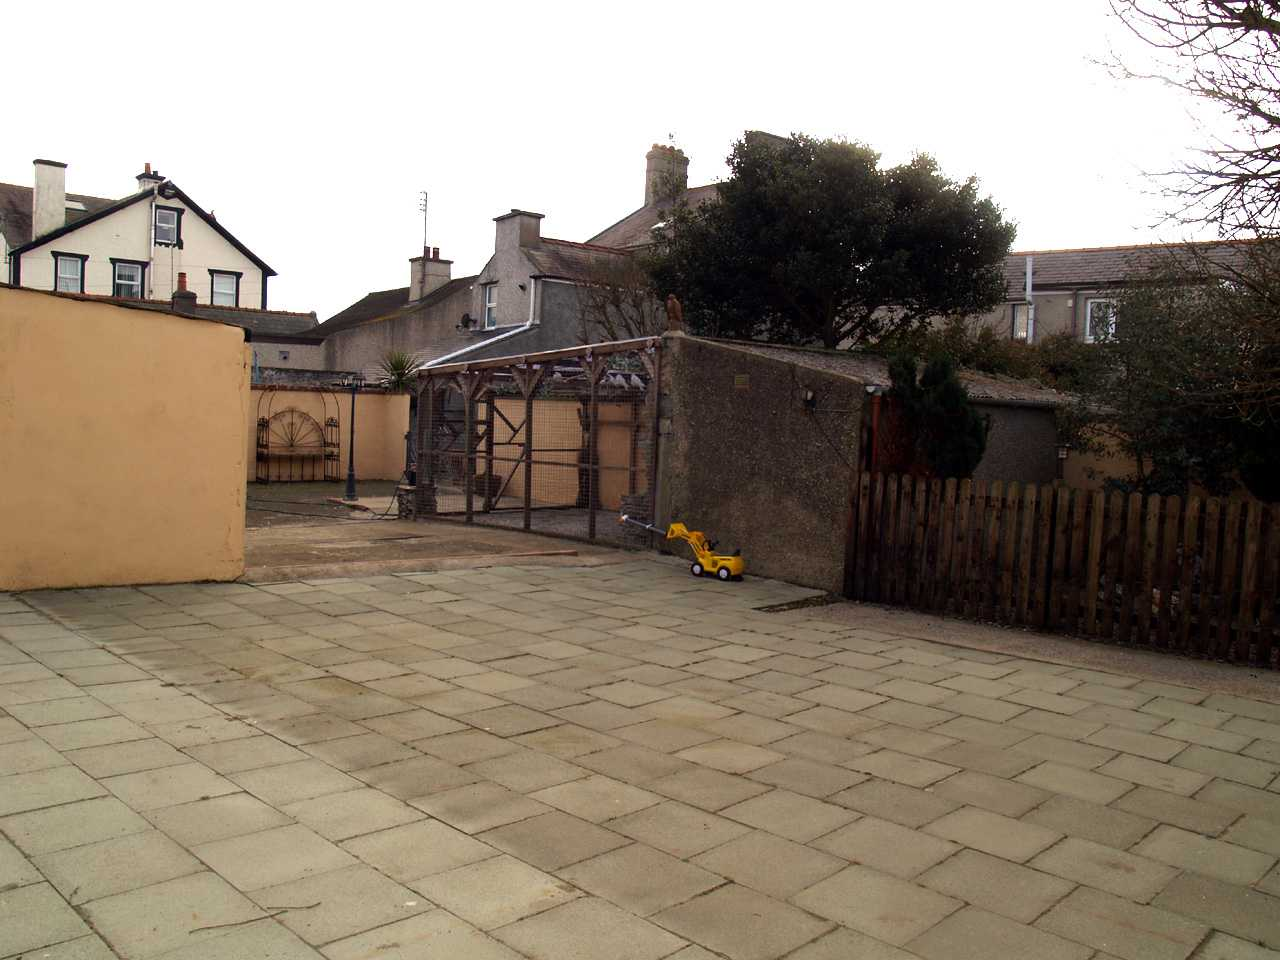 Yard and workshops at back of house with multiple uses in house for sale in Holyhead3